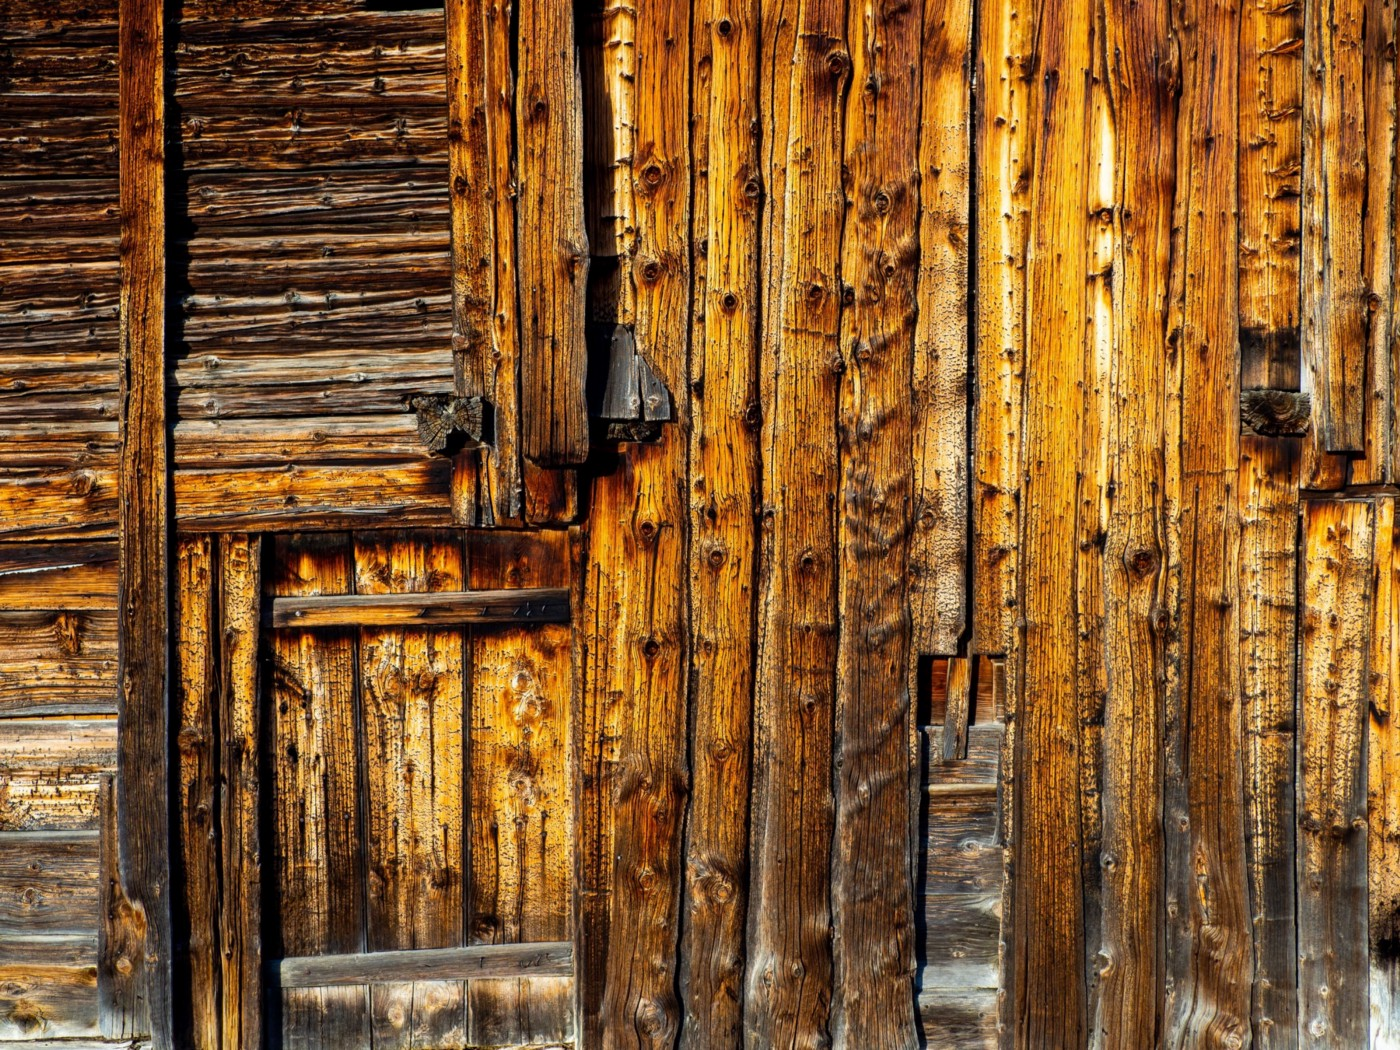 Rustic wooden door, nearly indistinguishable from planks of wood